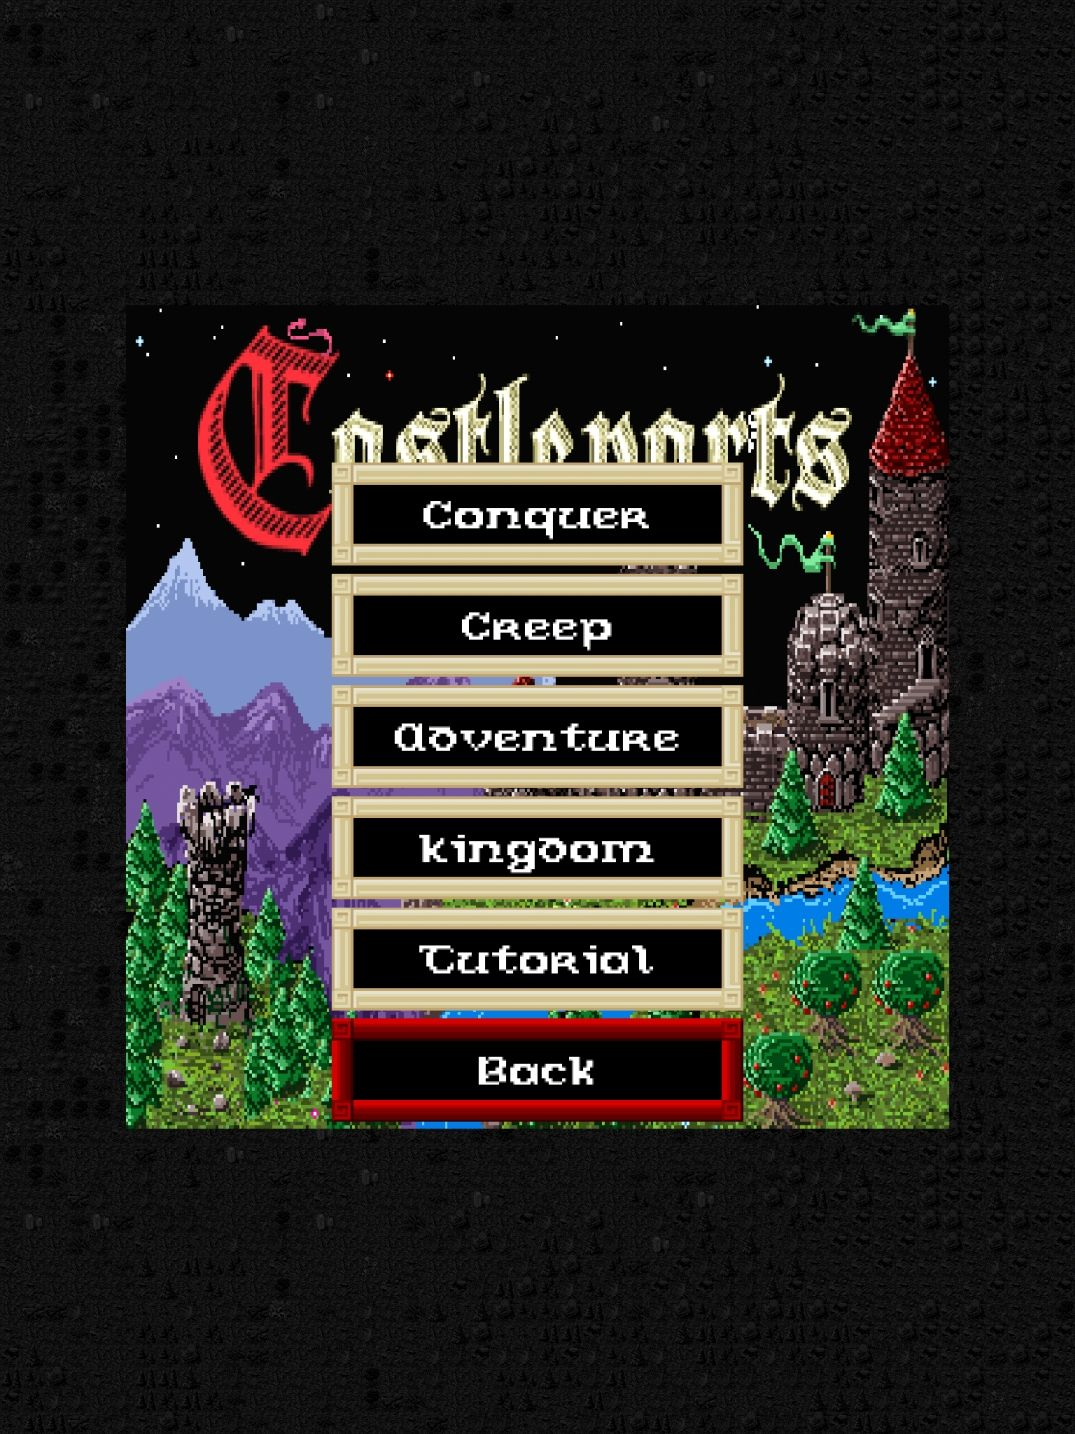 Castleparts (copie d'écran 1 sur iPhone / iPad)